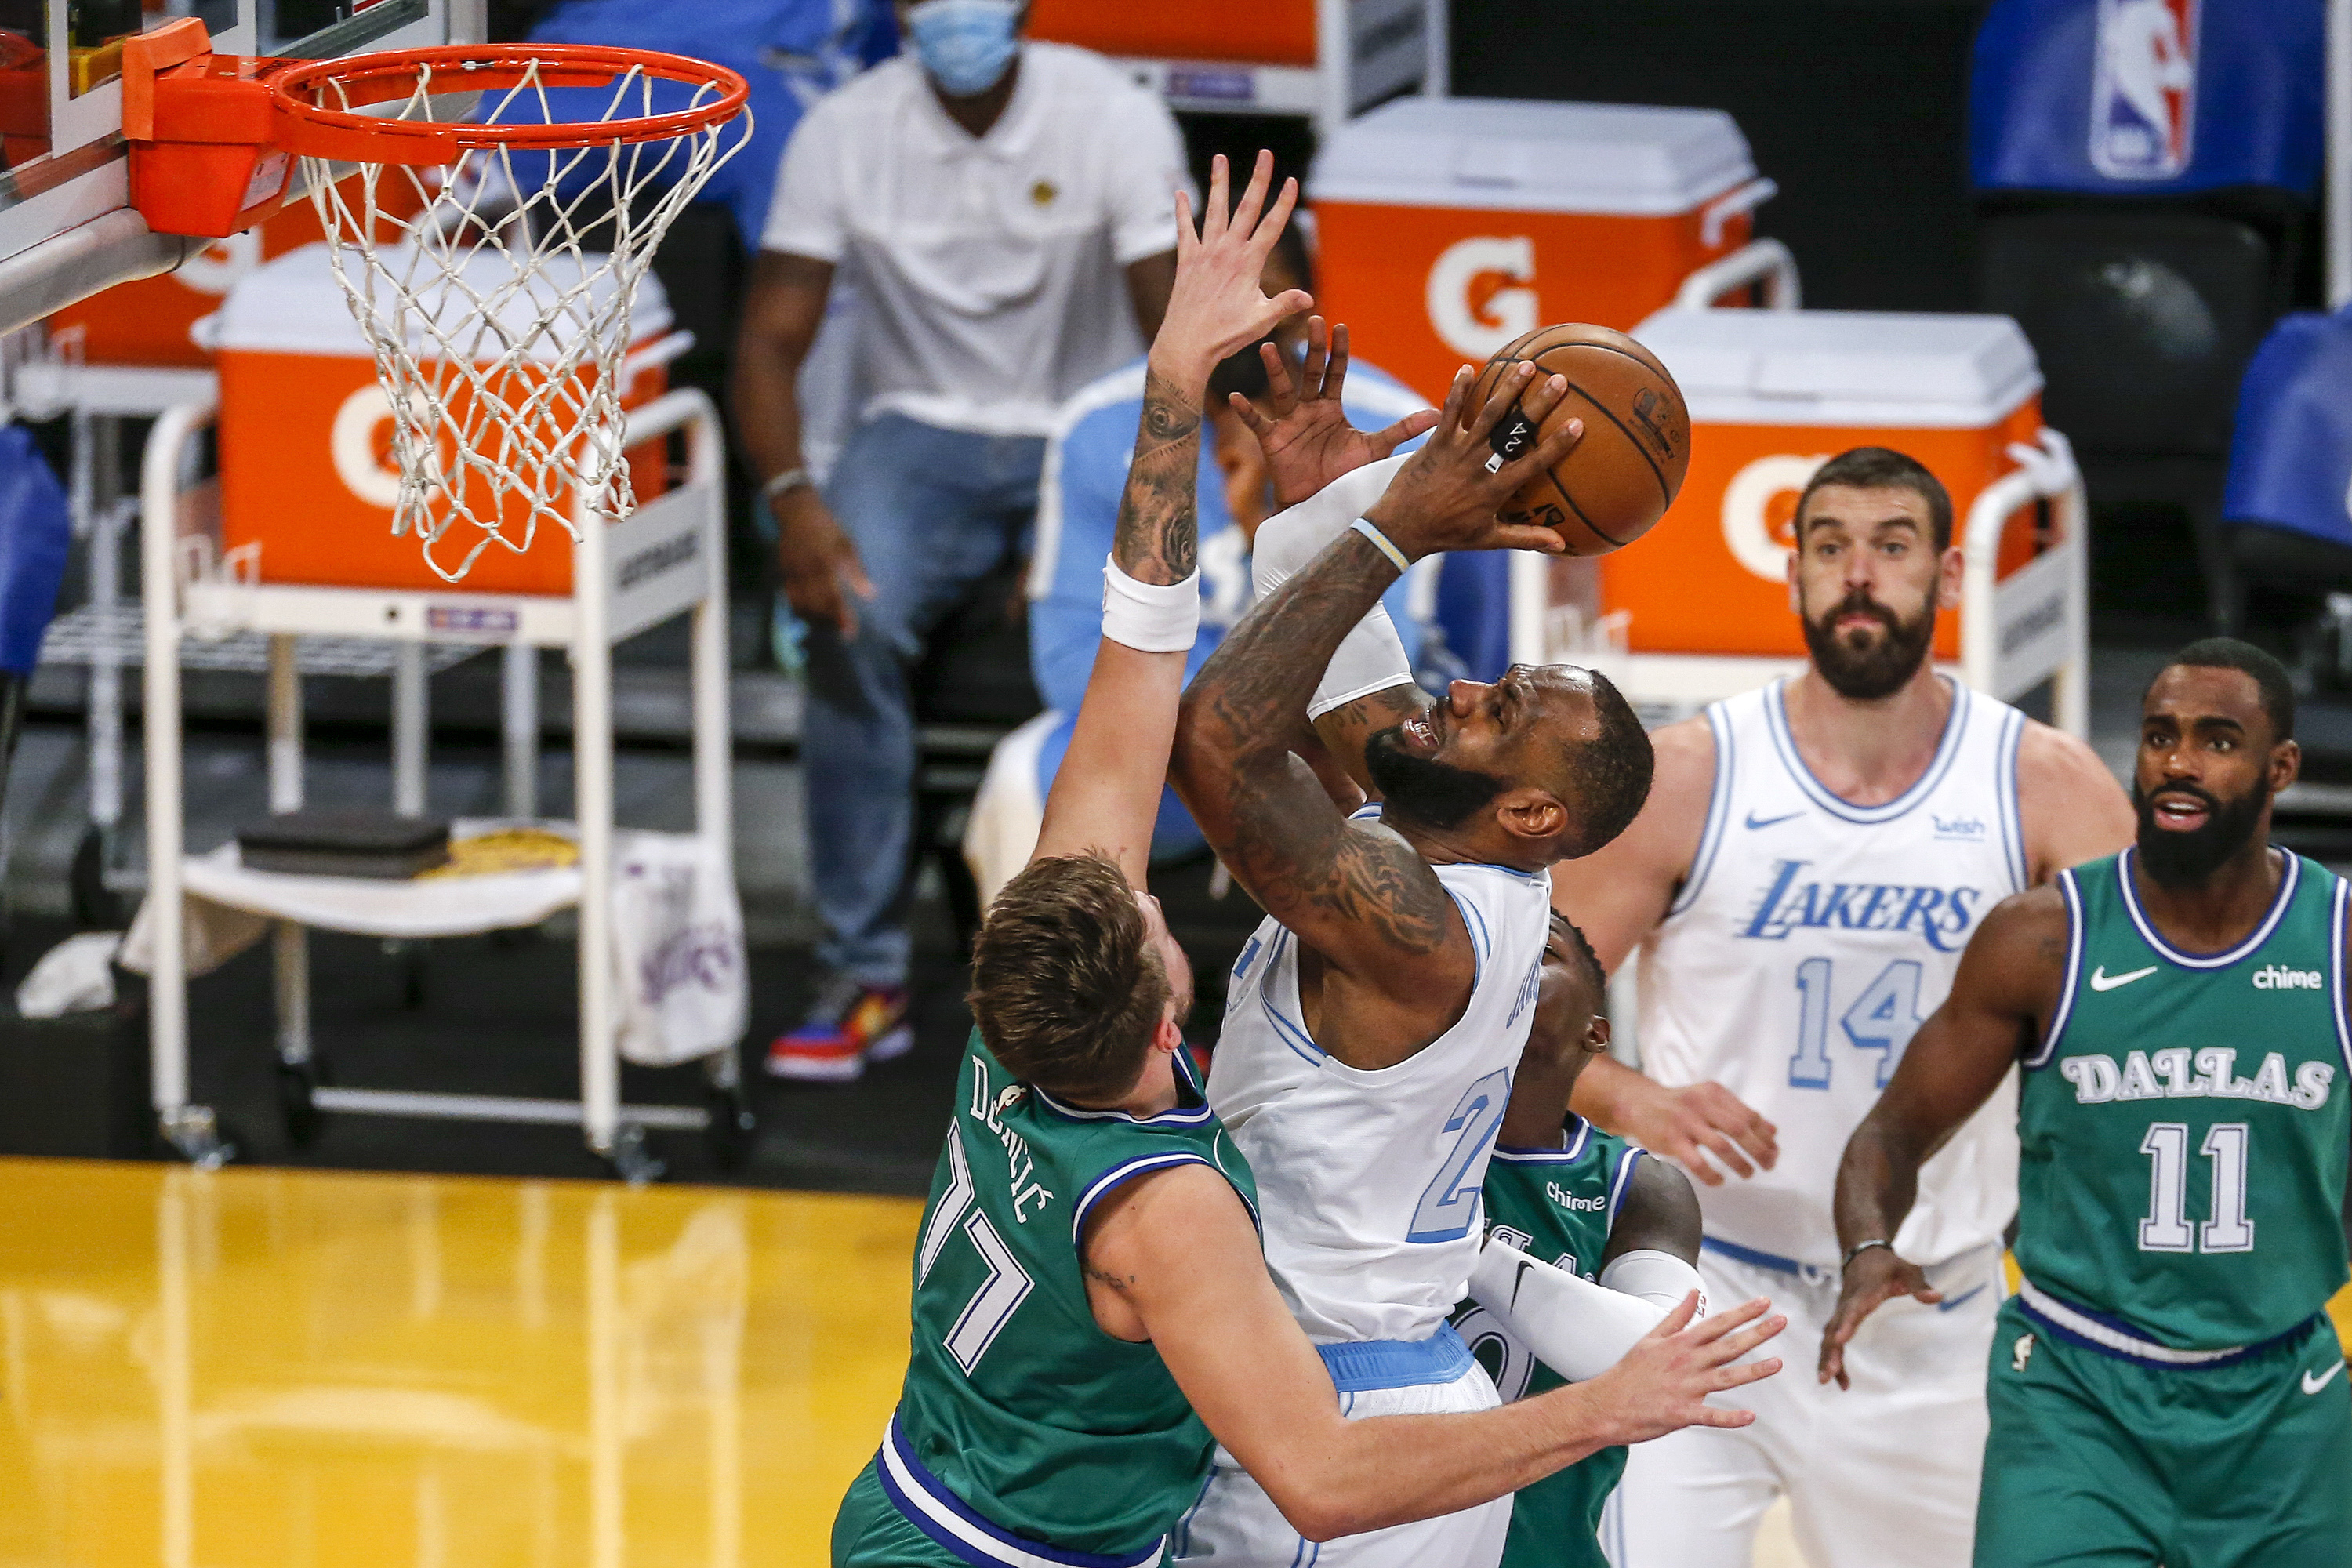 Los Angeles Lakers' LeBron James (23) goes to the basket while defended by Dallas Mavericks' Luka Doncic (77) during the first half of an NBA basketball game Friday, Dec. 25, 2020, in Los Angeles. Photo: AP